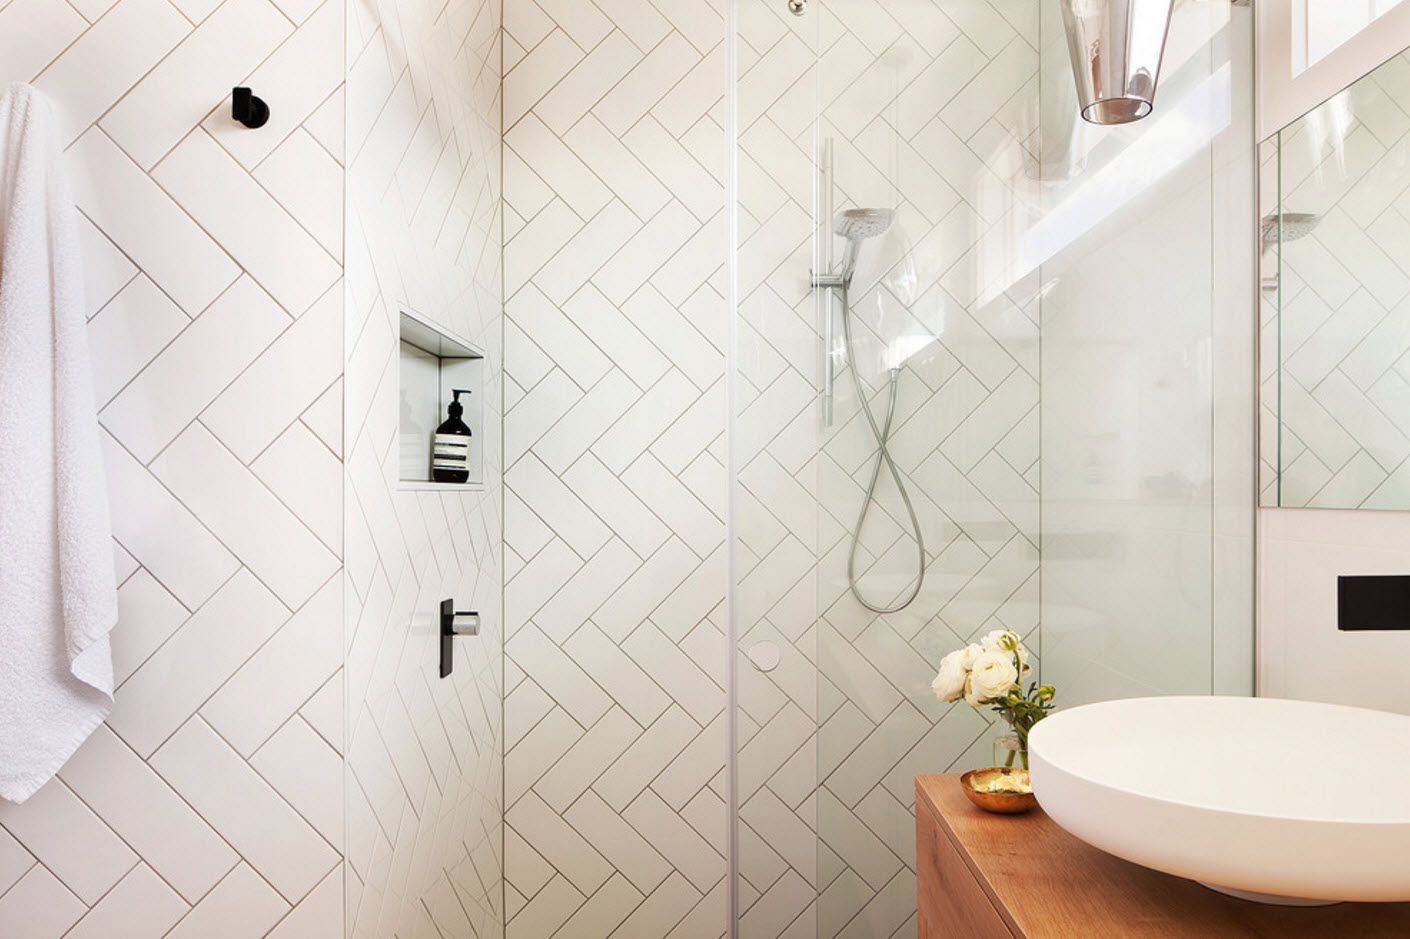 Herringbone prolonged tiles of the shower zone and minimalistic arrangement in the bathroom